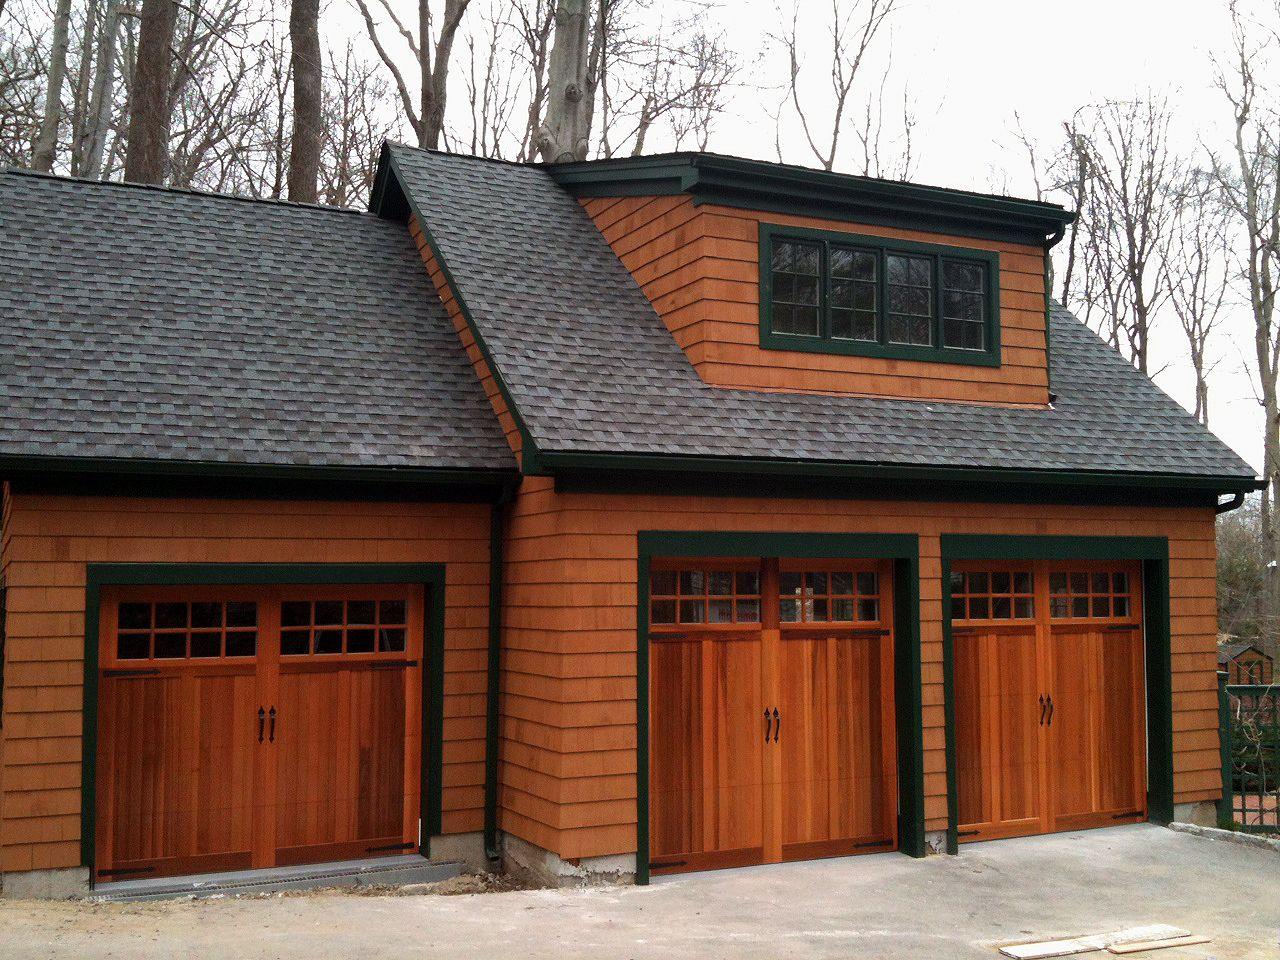 Wood Overlay Carriage House Garage Doors By C H I Overhead Doors Garage Door Design Garage Doors Carriage House Garage Doors